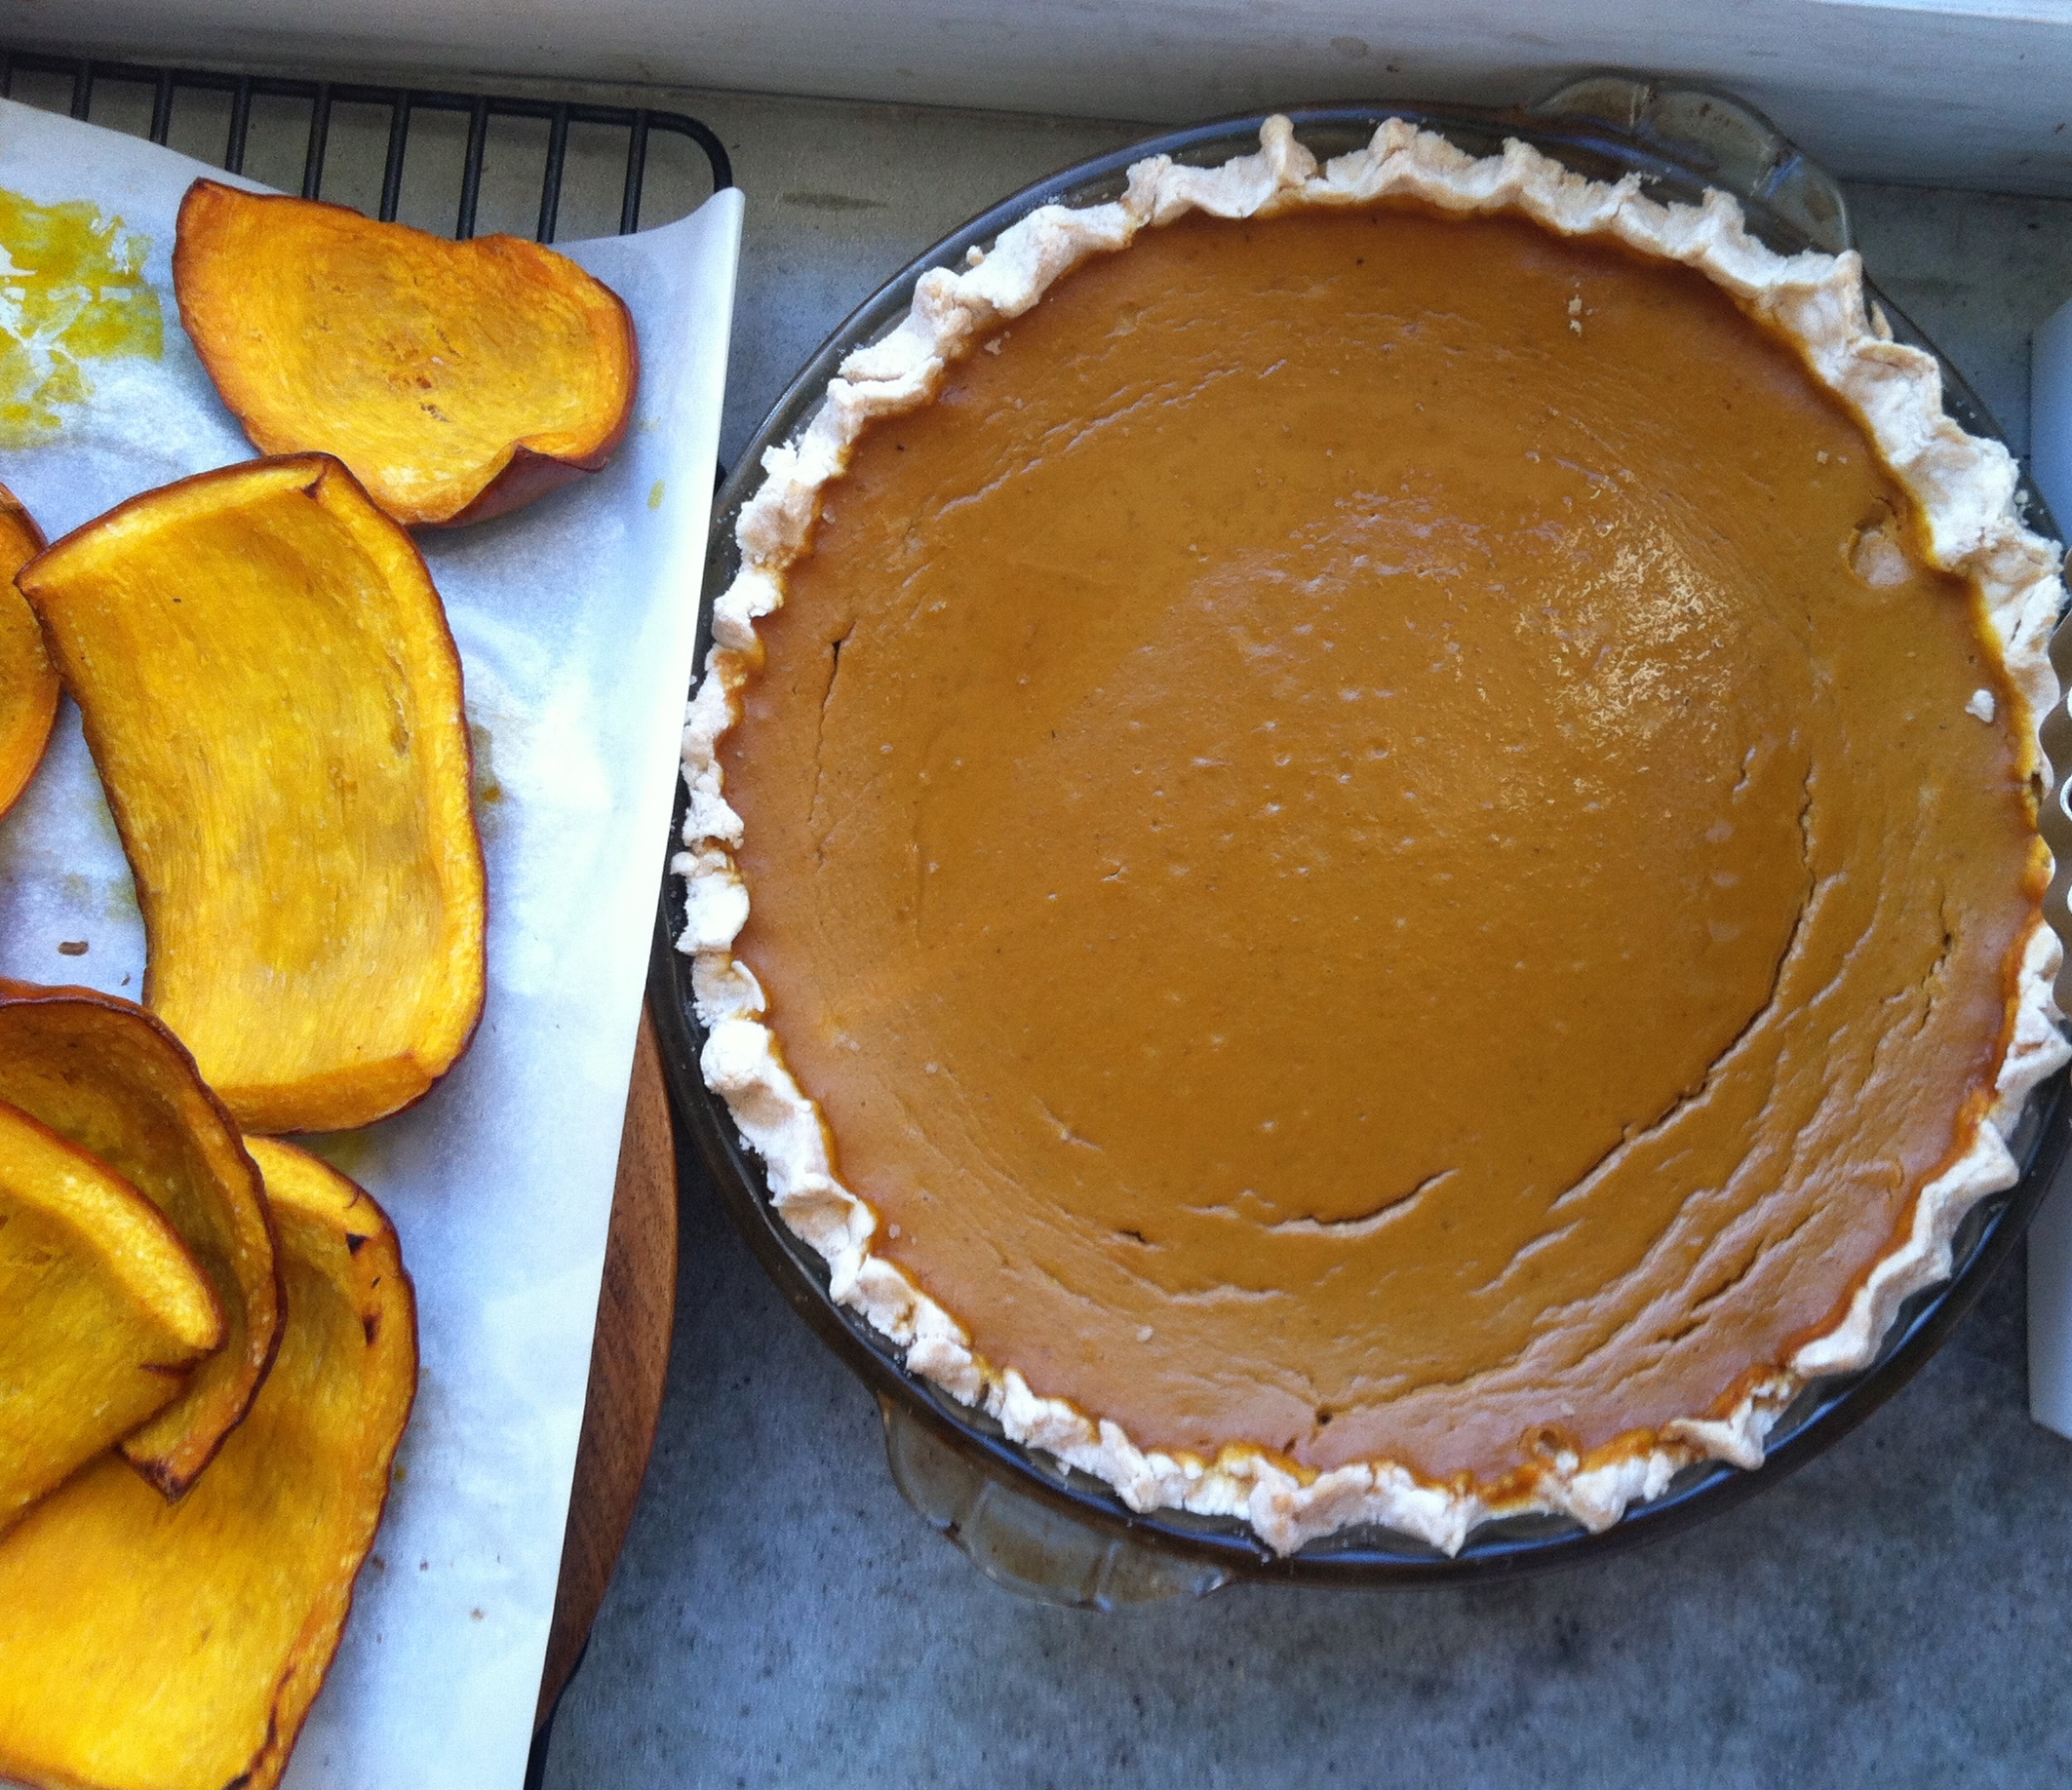 Fresh roasted pumpkin pieces, and my sister's pumpkin pie made with gluten free crust (yes, I will try and get her recipe to share, and no, sadly, I don't have it yet….)